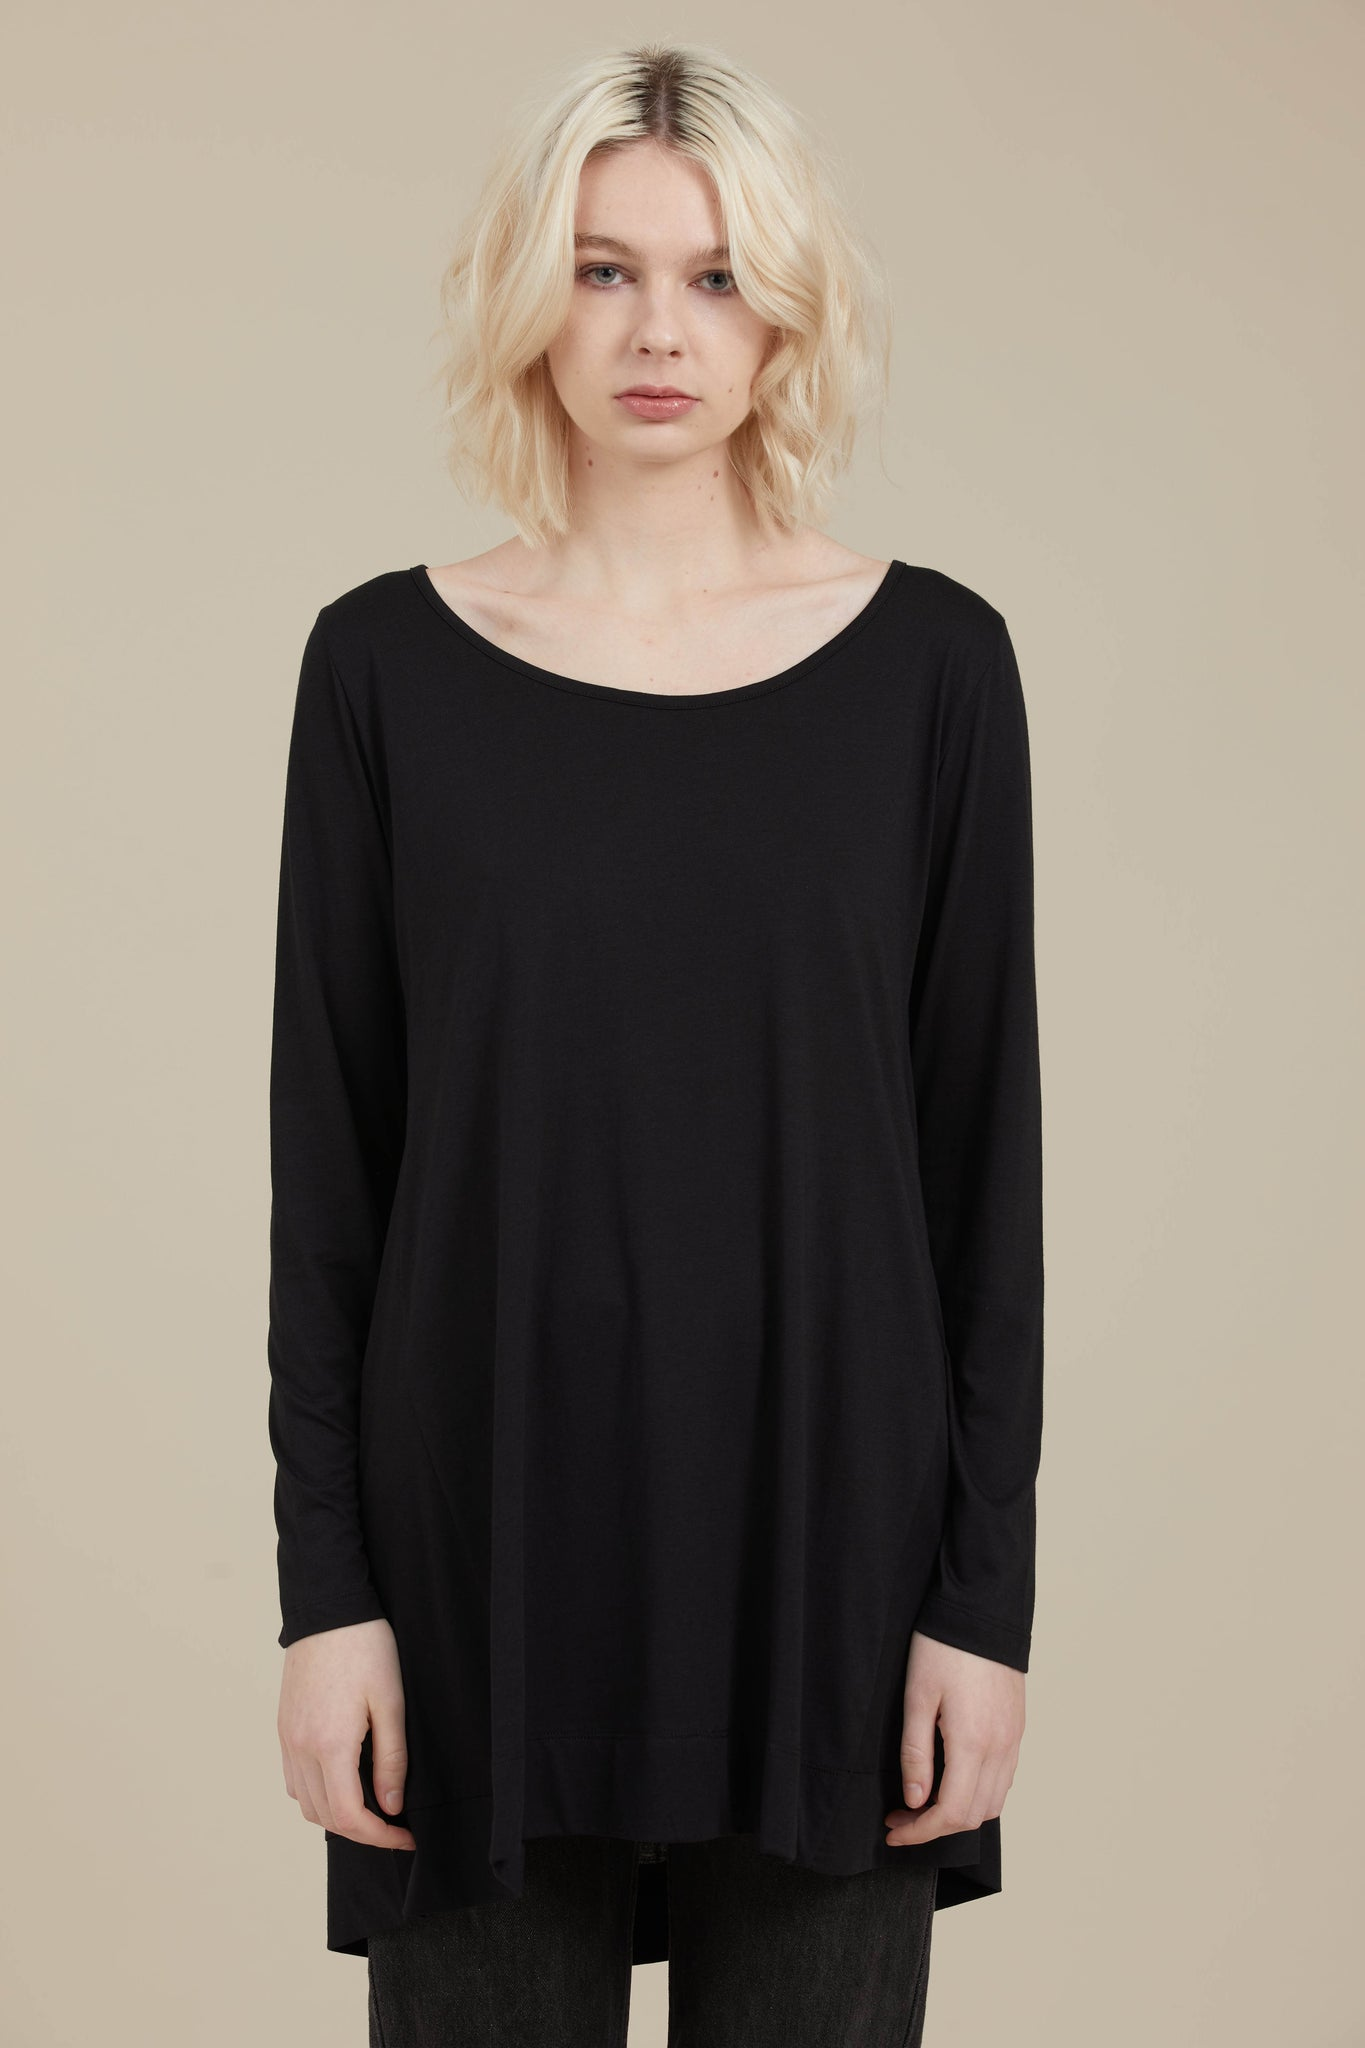 Gaard Eclipse Tee (Plain)